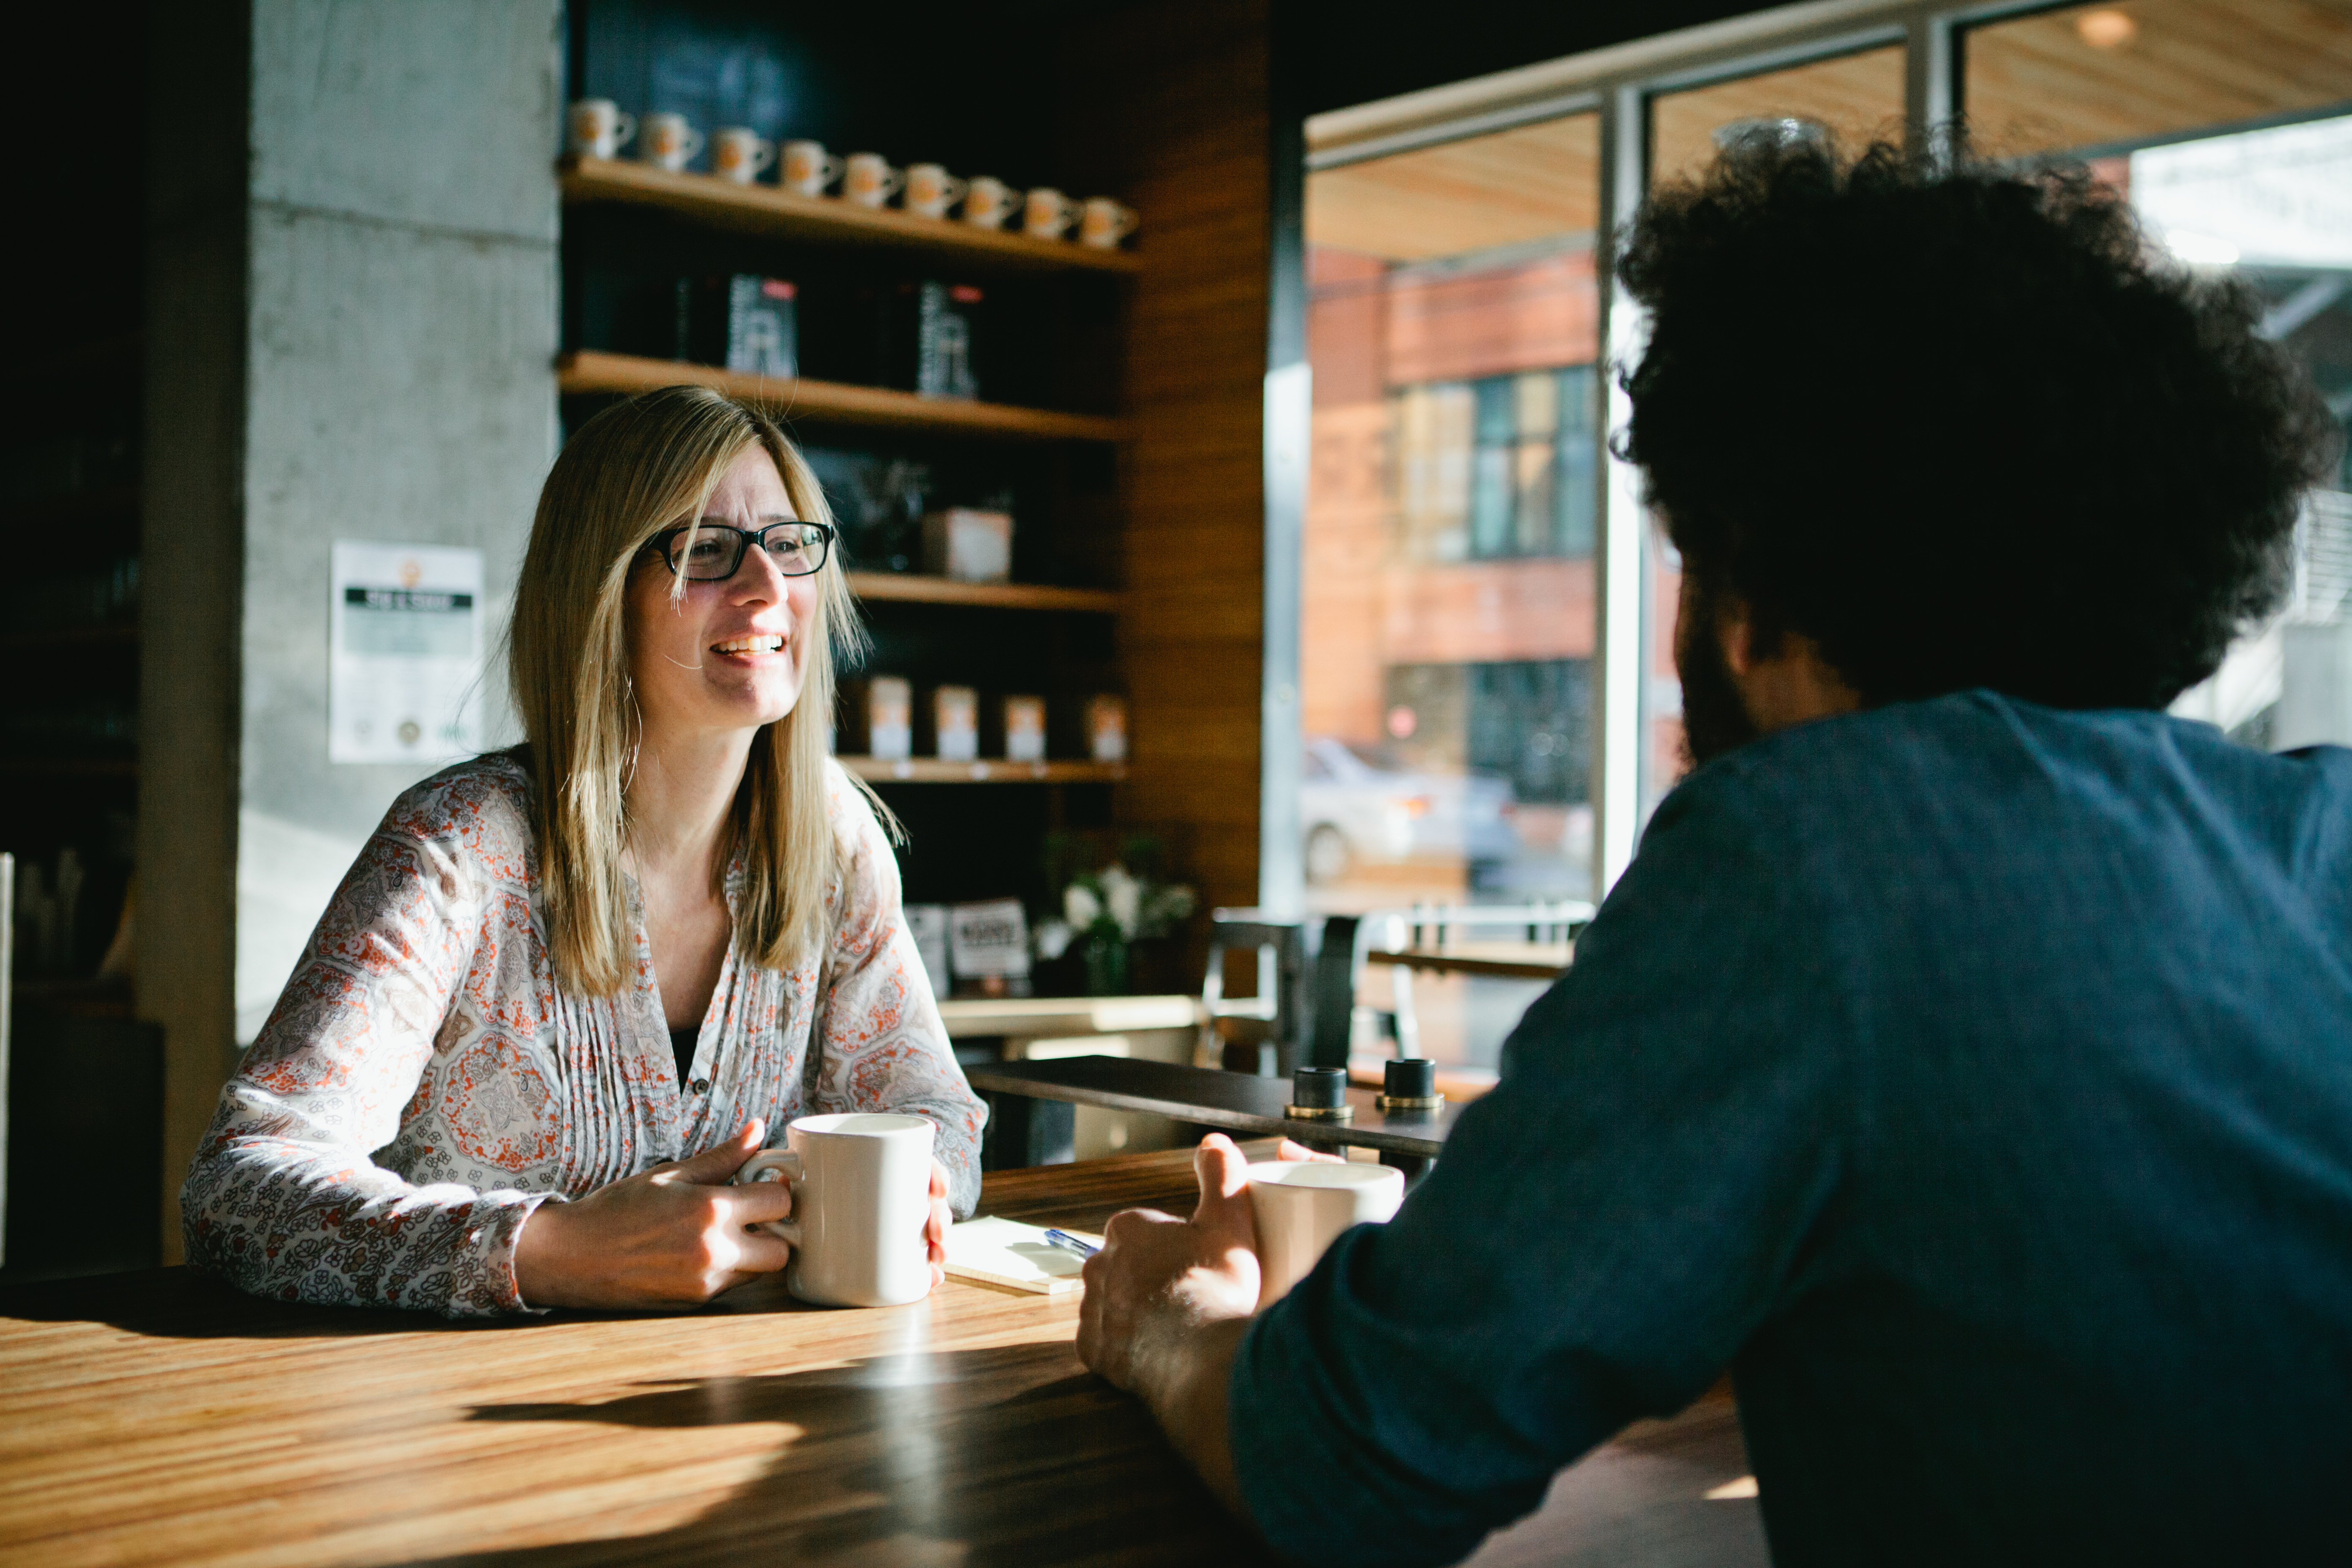 Man and woman having a drink together in a coffee shop